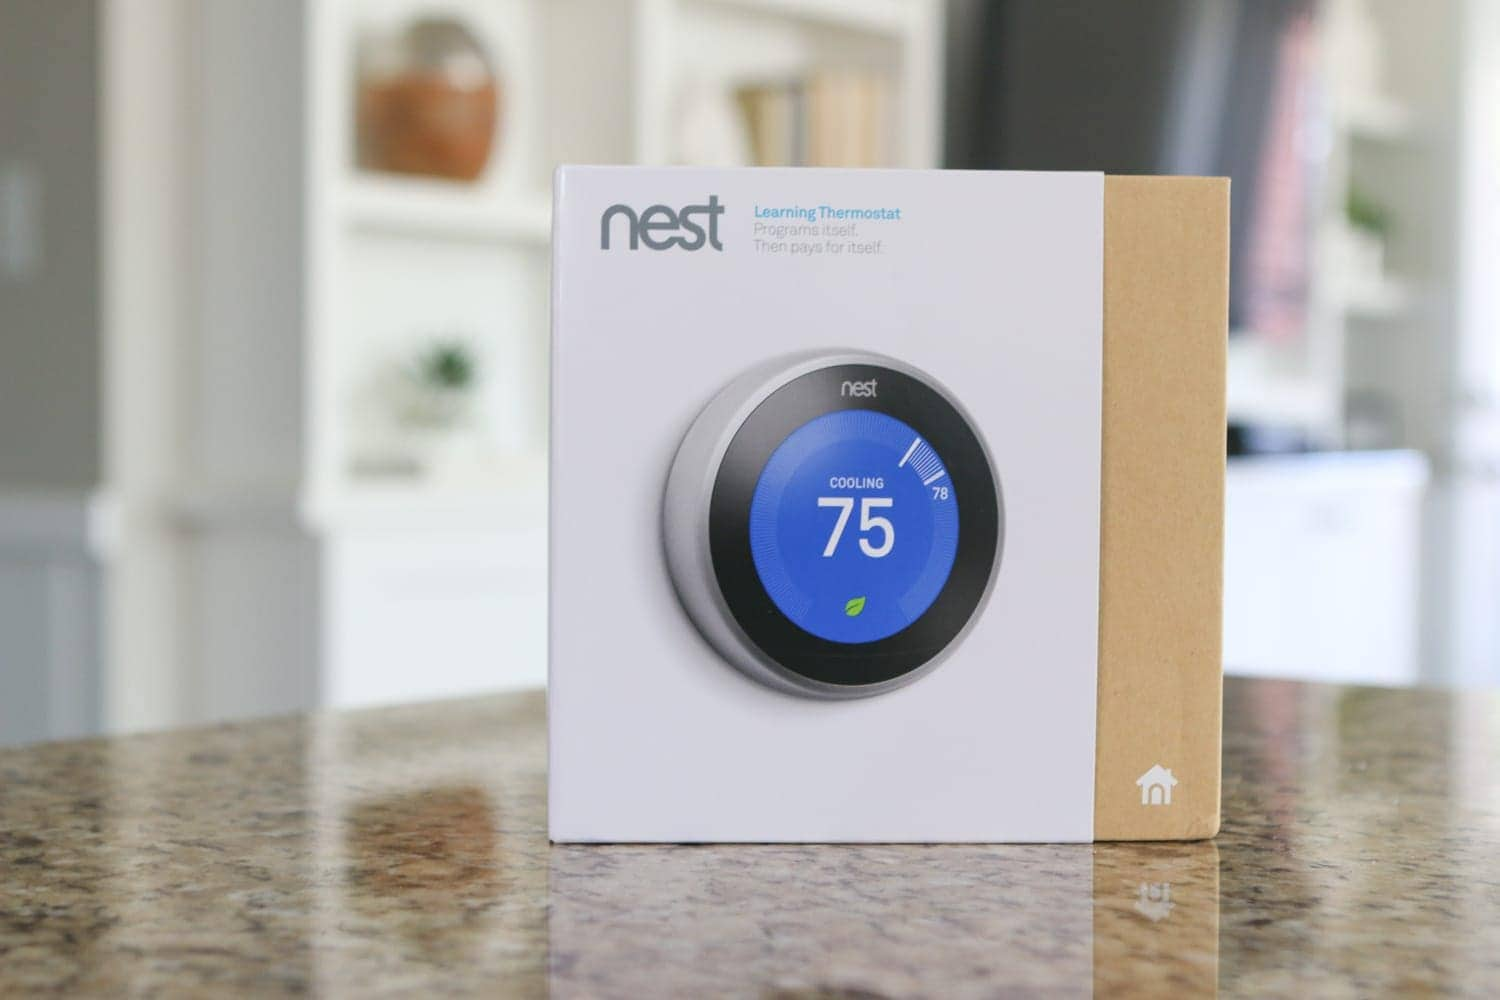 This Nest thermostat came from Amazon; it's a great place to shop for home essentials because you can find almost everything and get fast delivery.